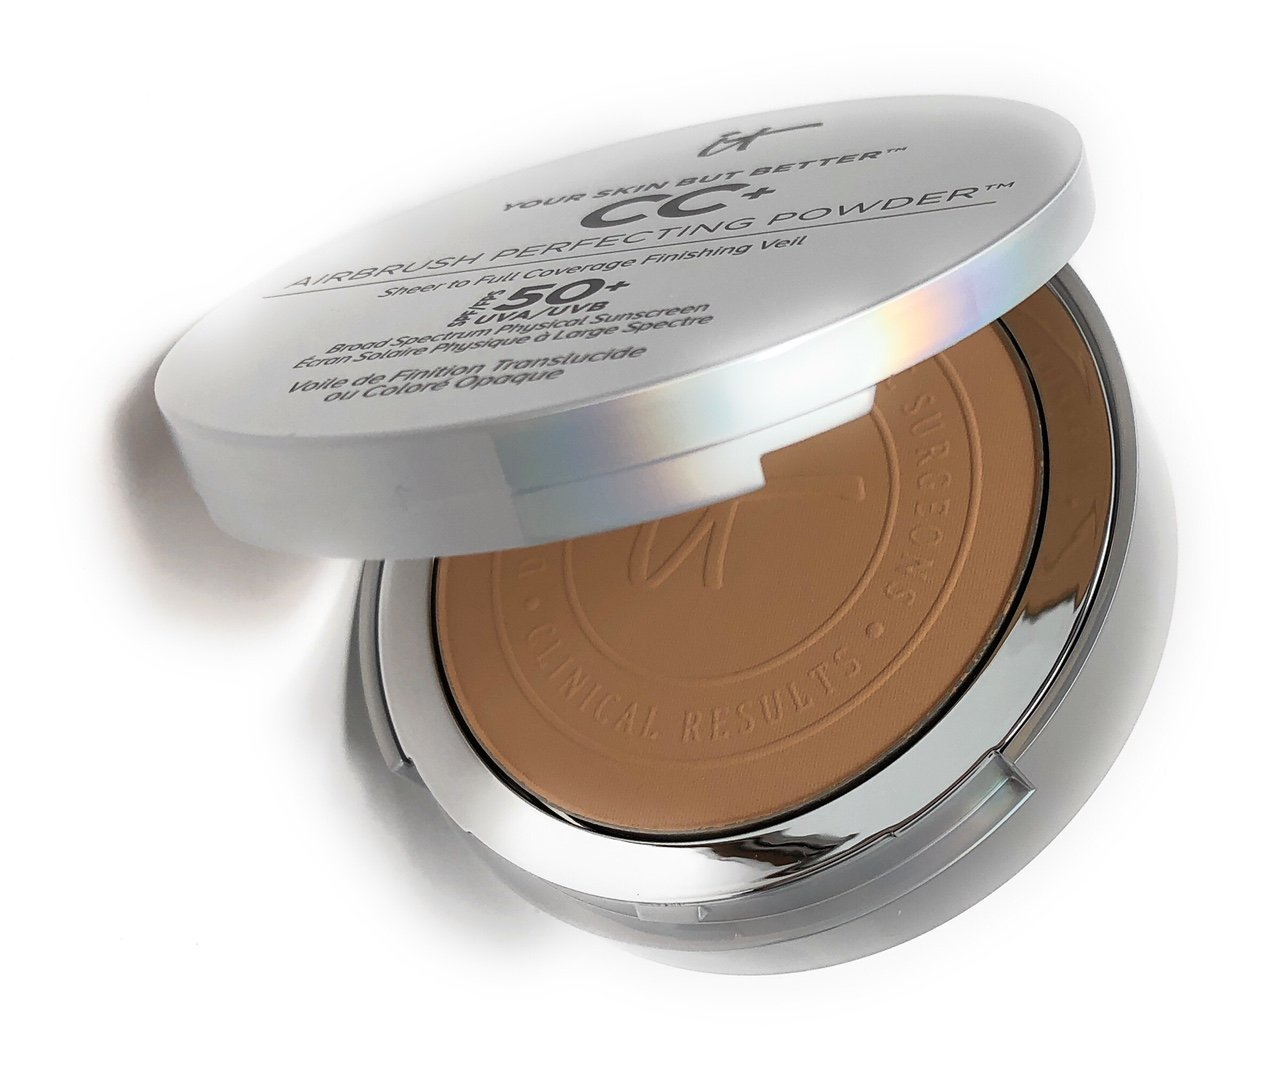 It Cosmetics Your Skin But Better CC+ Airbrush Perfecting Powder SPF 50+ Medium by IT Cosmetics